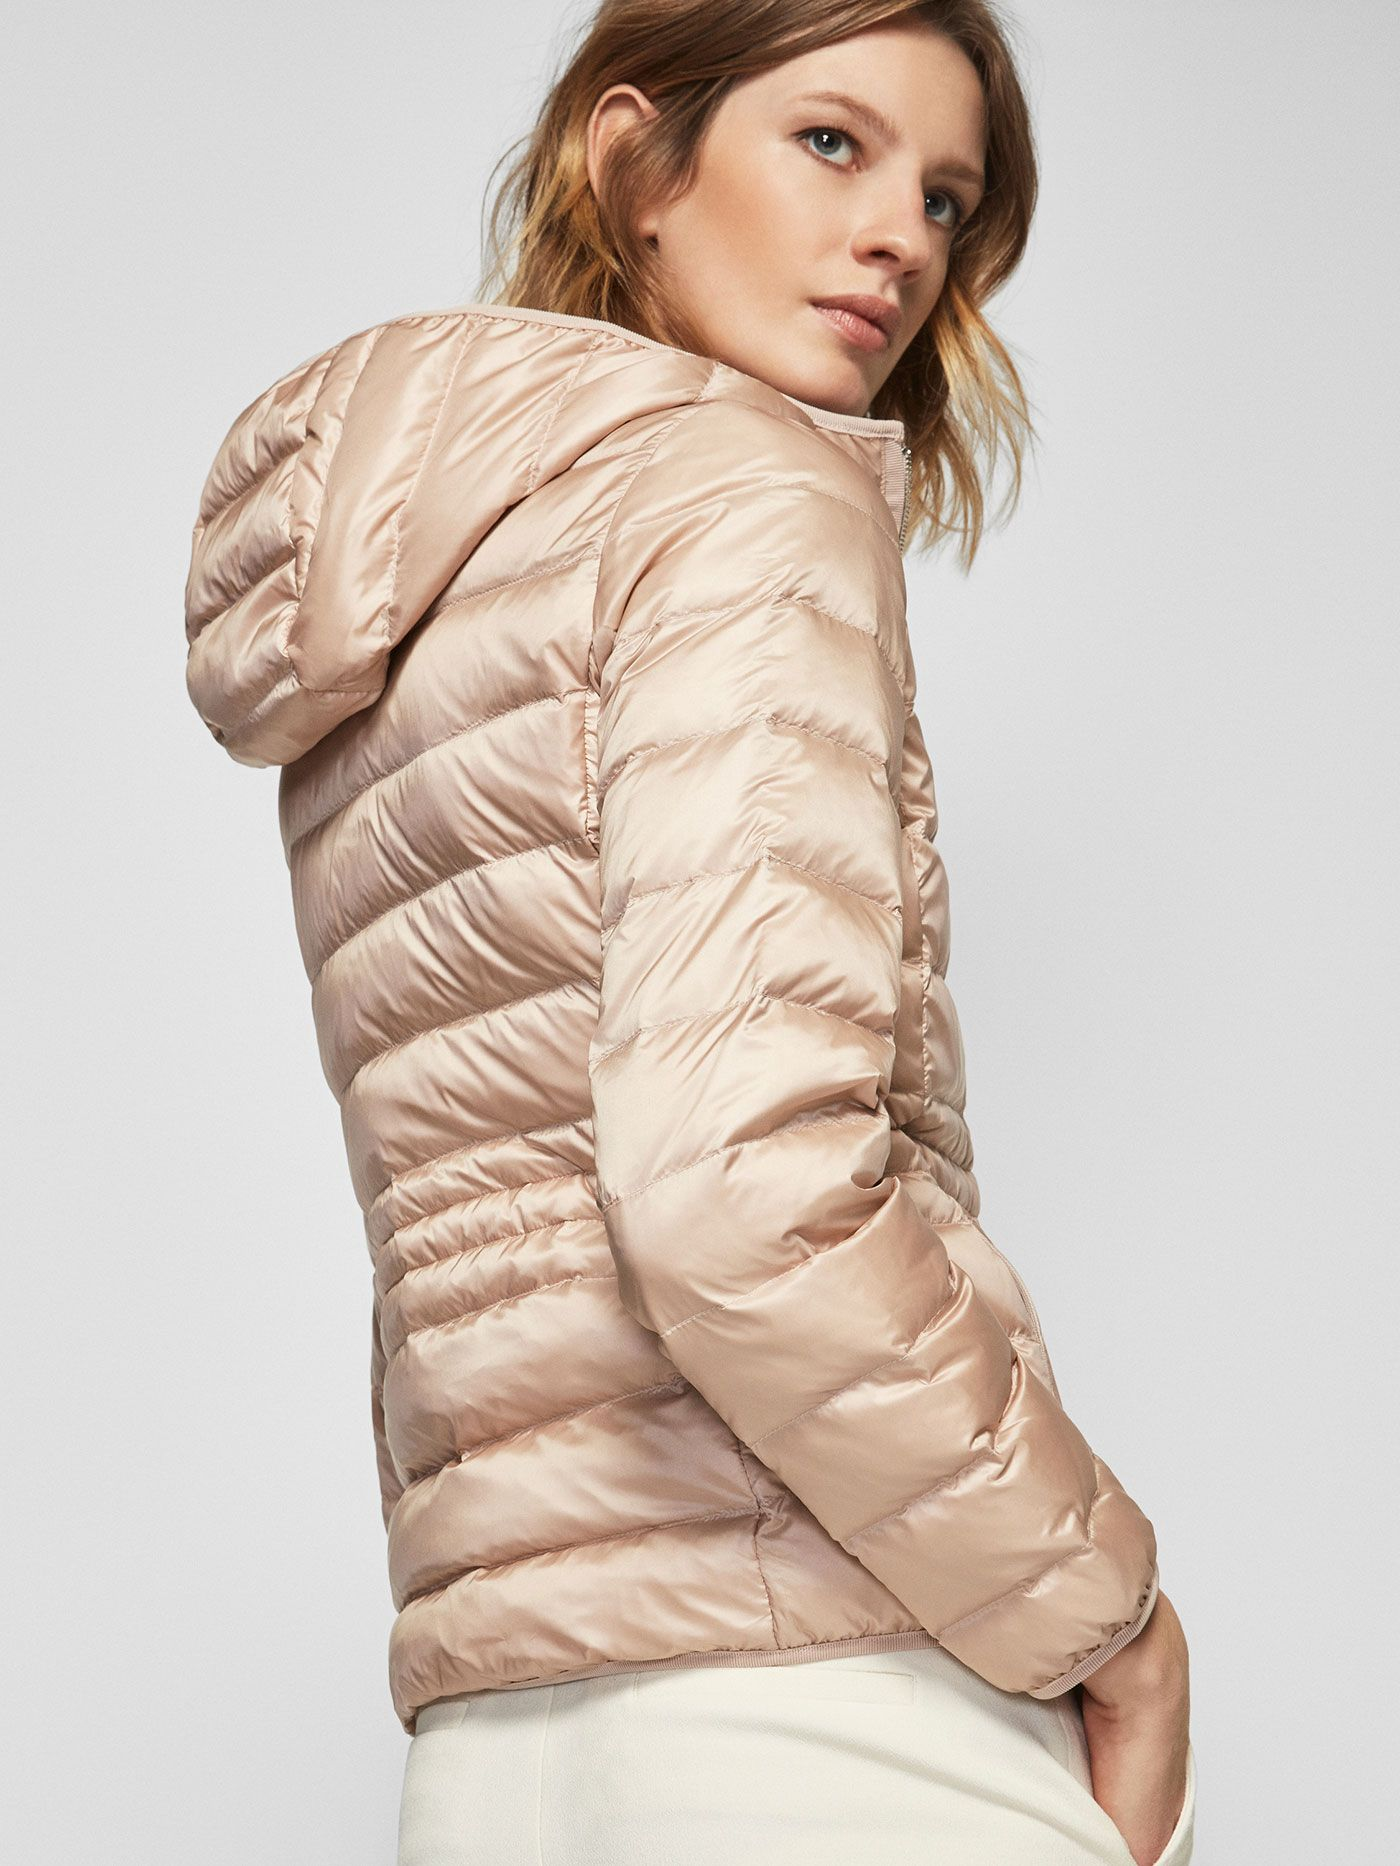 Autumn Spring Summer 2017 Women S Pink Feather Down Jacket At Massimo Dutti For 89 5 Effortless Elegance Coats Jackets Women Jackets Outerwear Women [ 1866 x 1400 Pixel ]